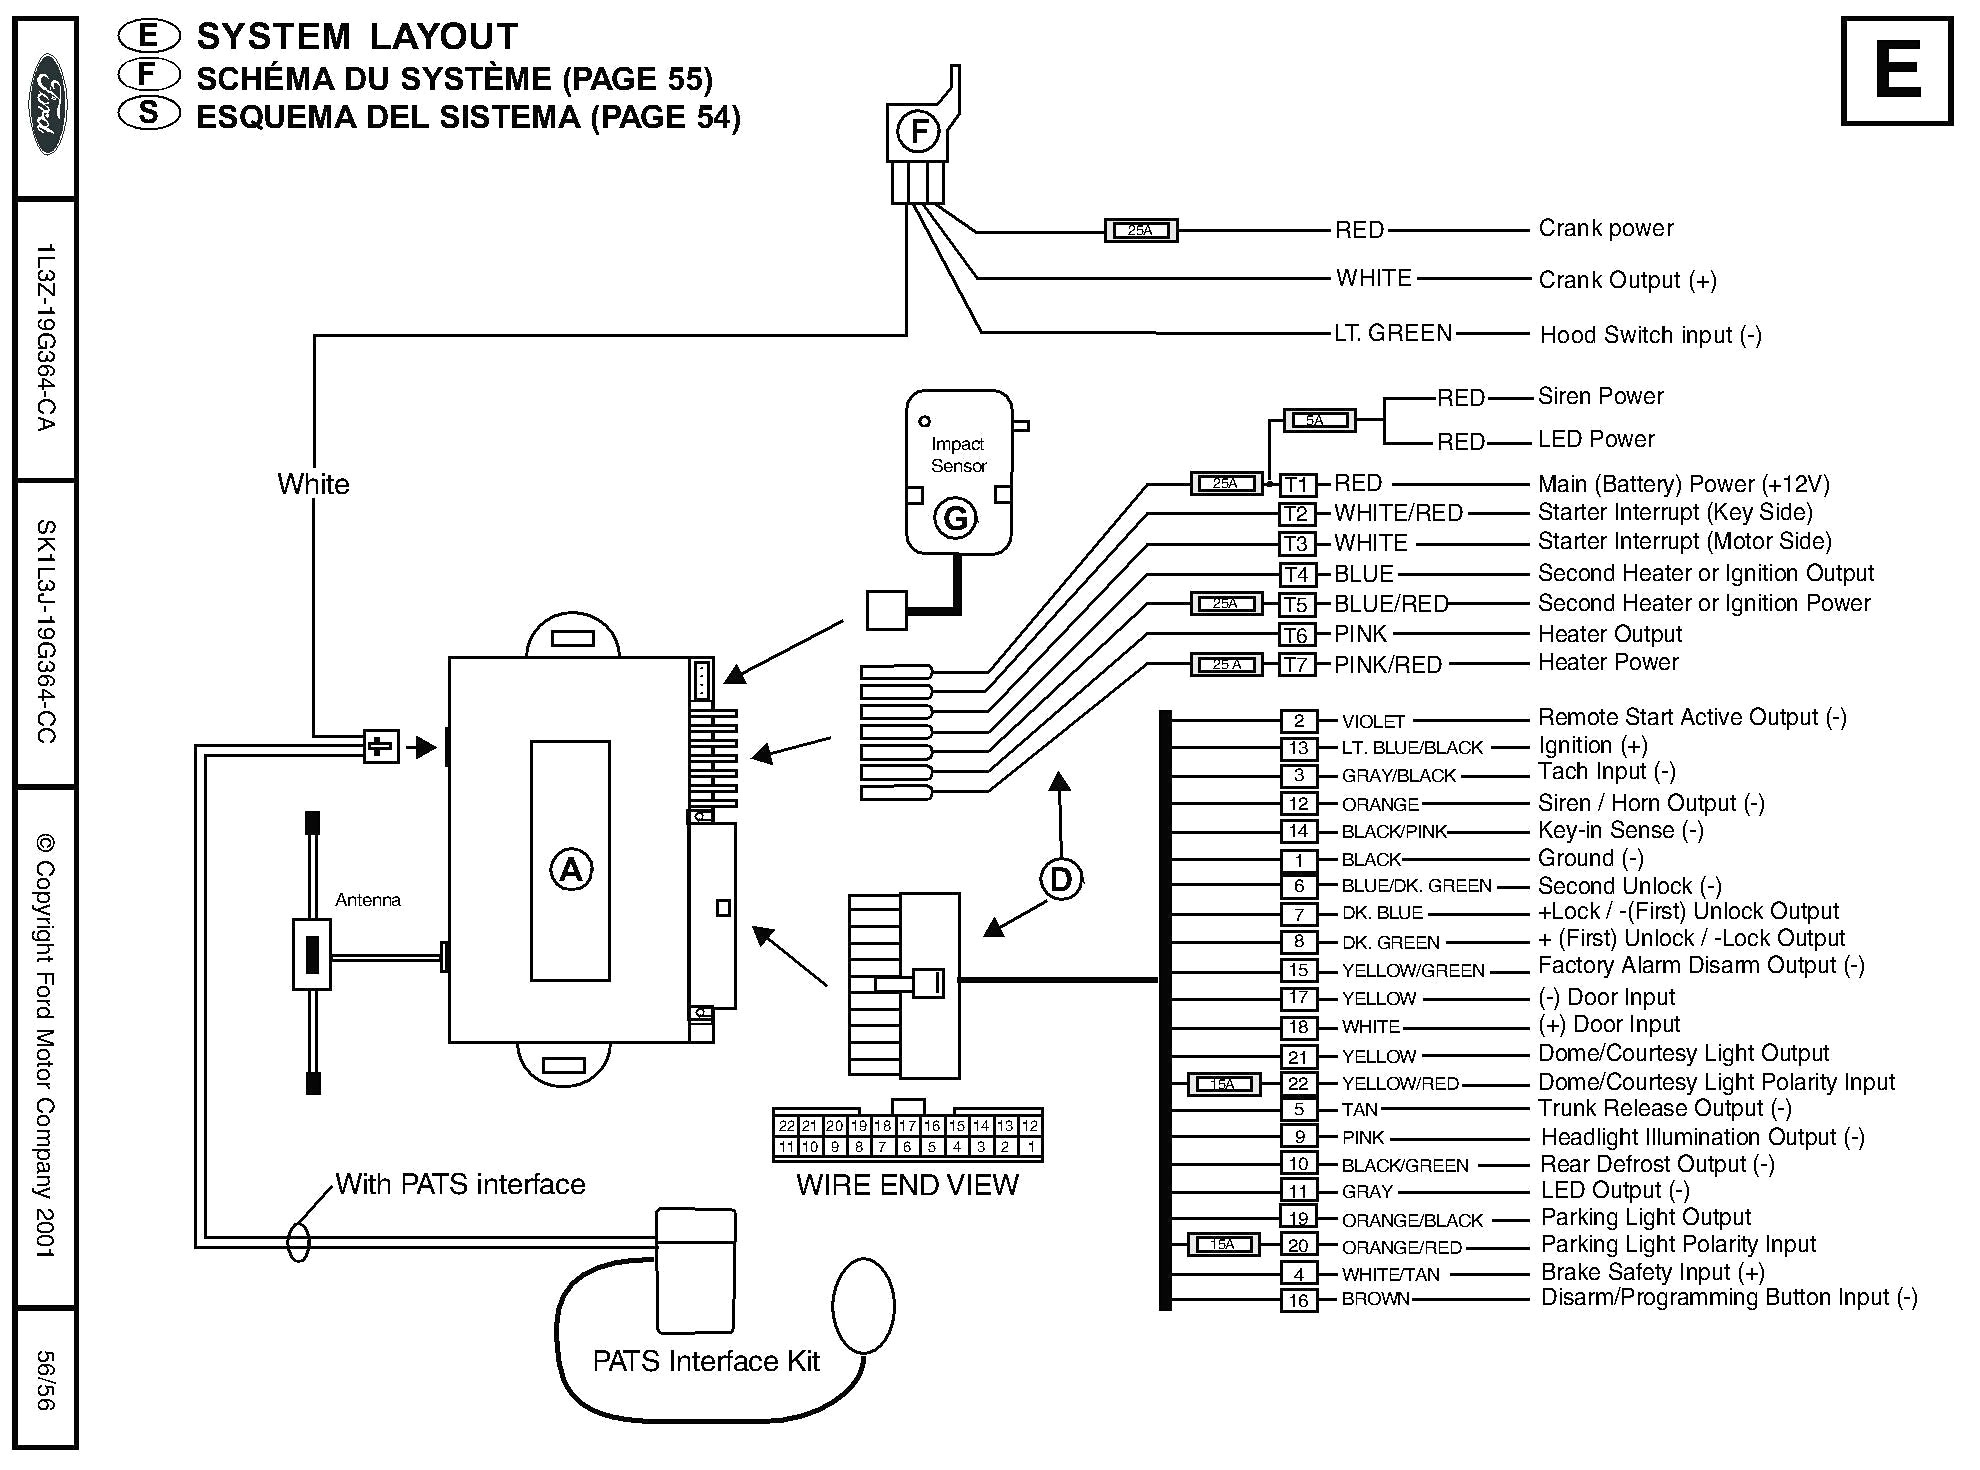 bulldog car alarm wiring diagram Download-Toyota Alarm Wiring Diagram New Vehicle Wiring Diagrams for Alarms Best Bulldog Security Wiring 15-g